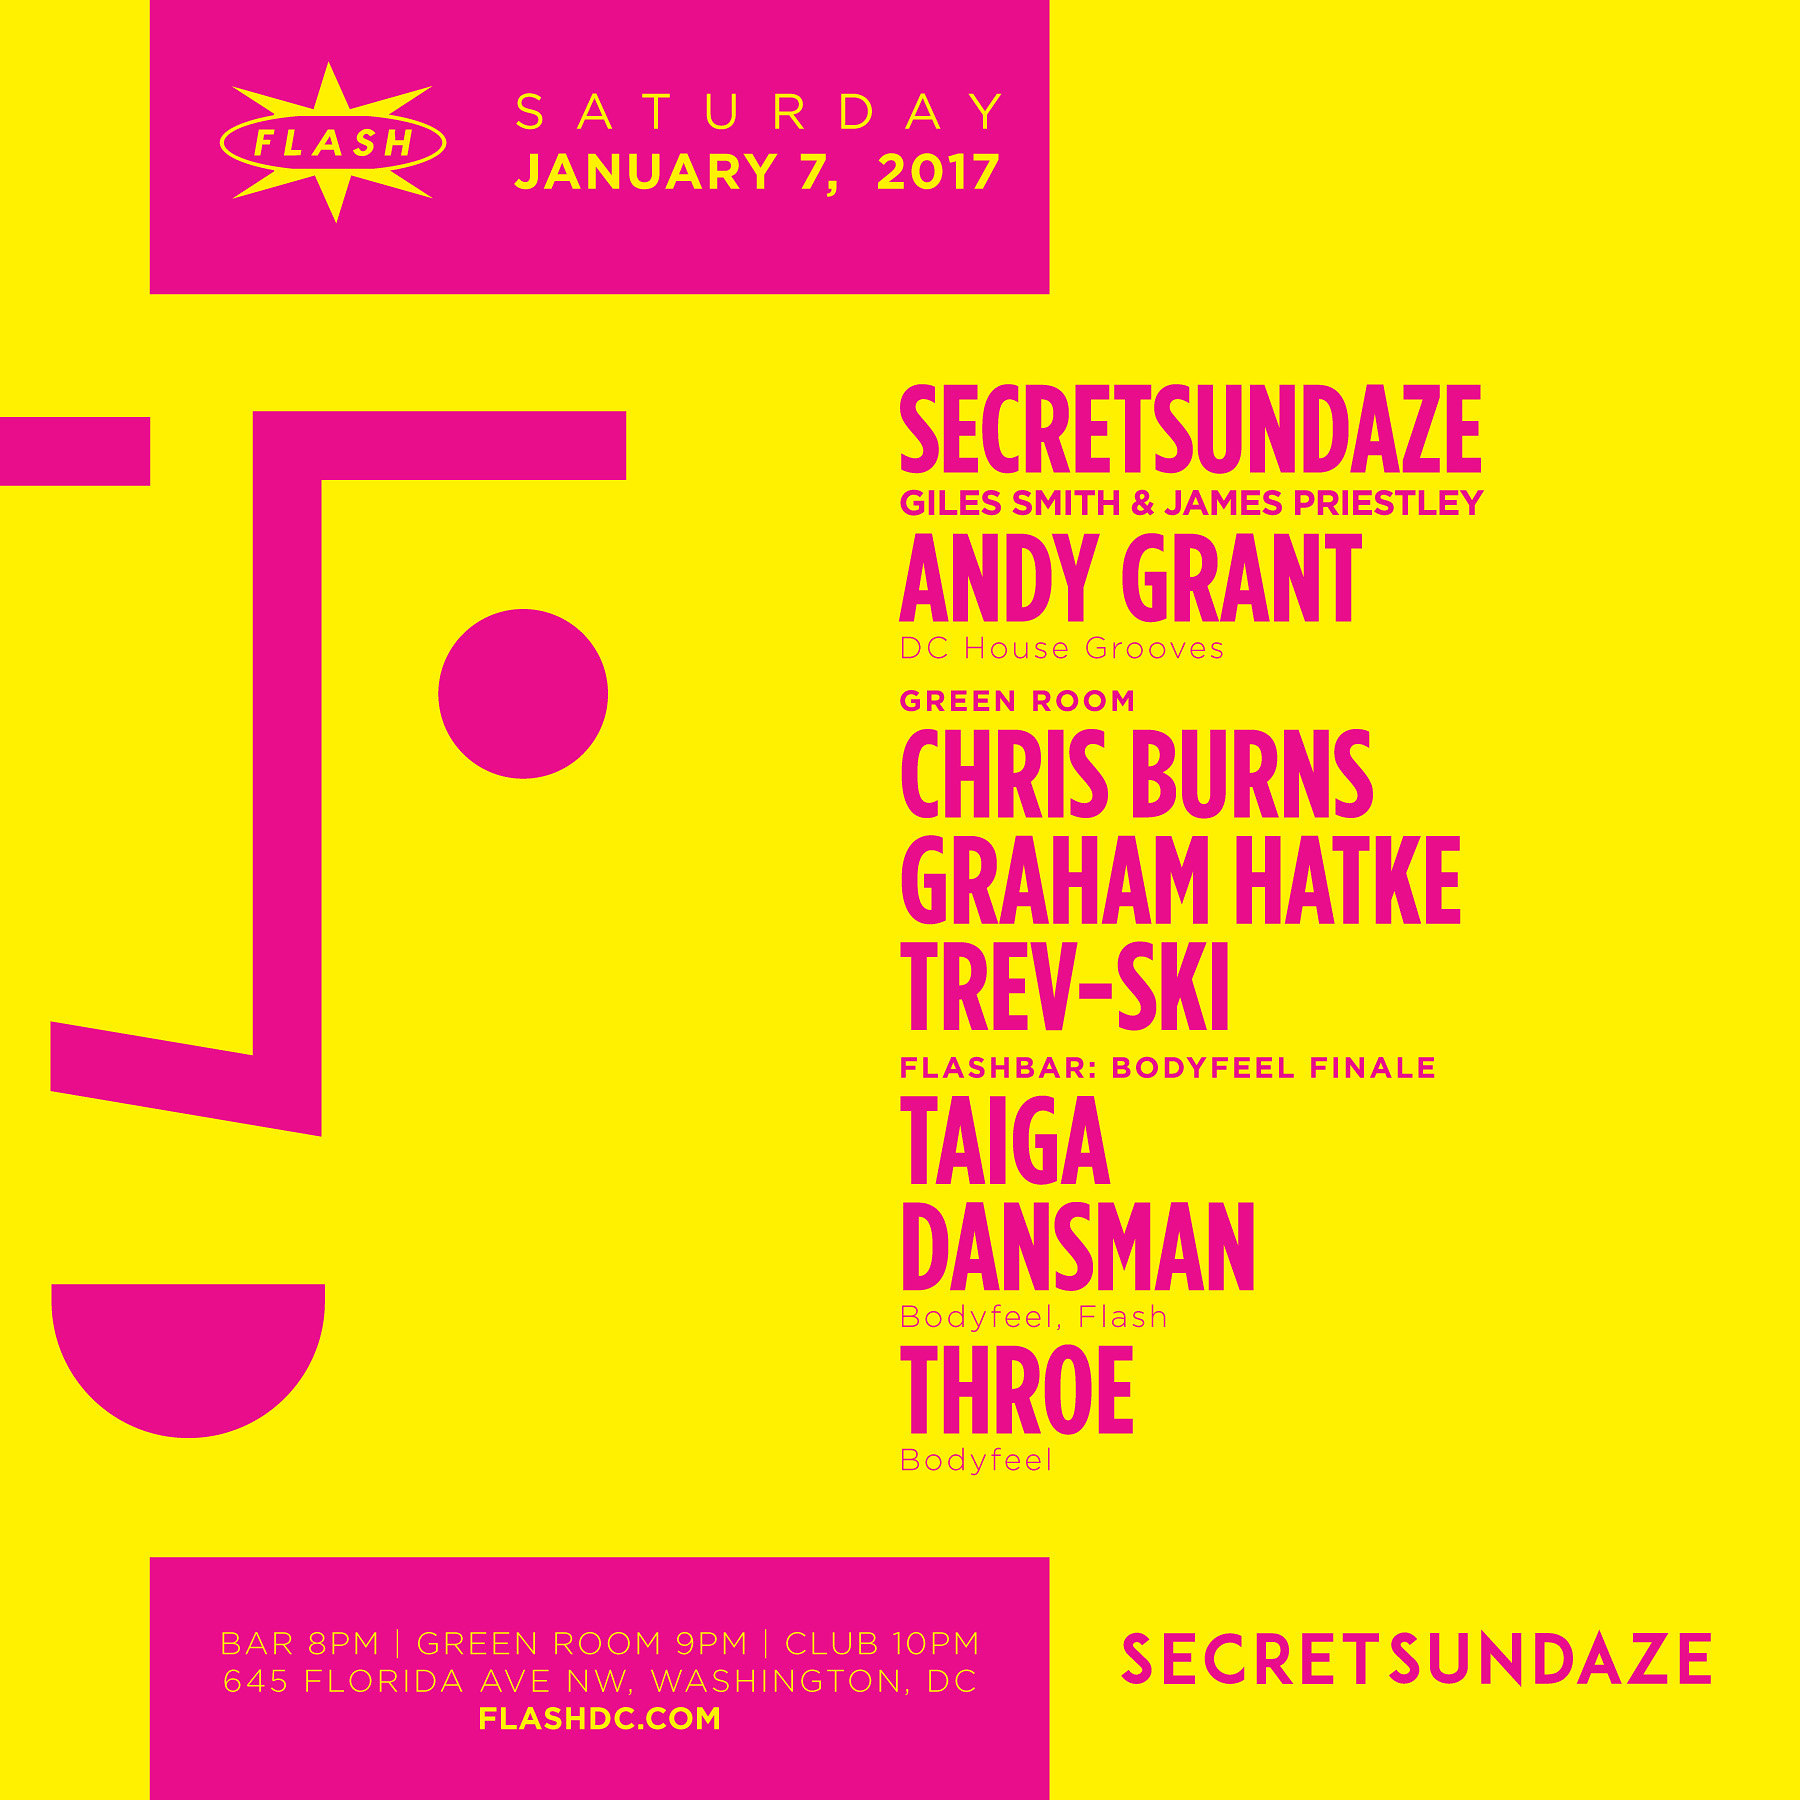 secretsundaze: Giles Smith & James Priestley event thumbnail